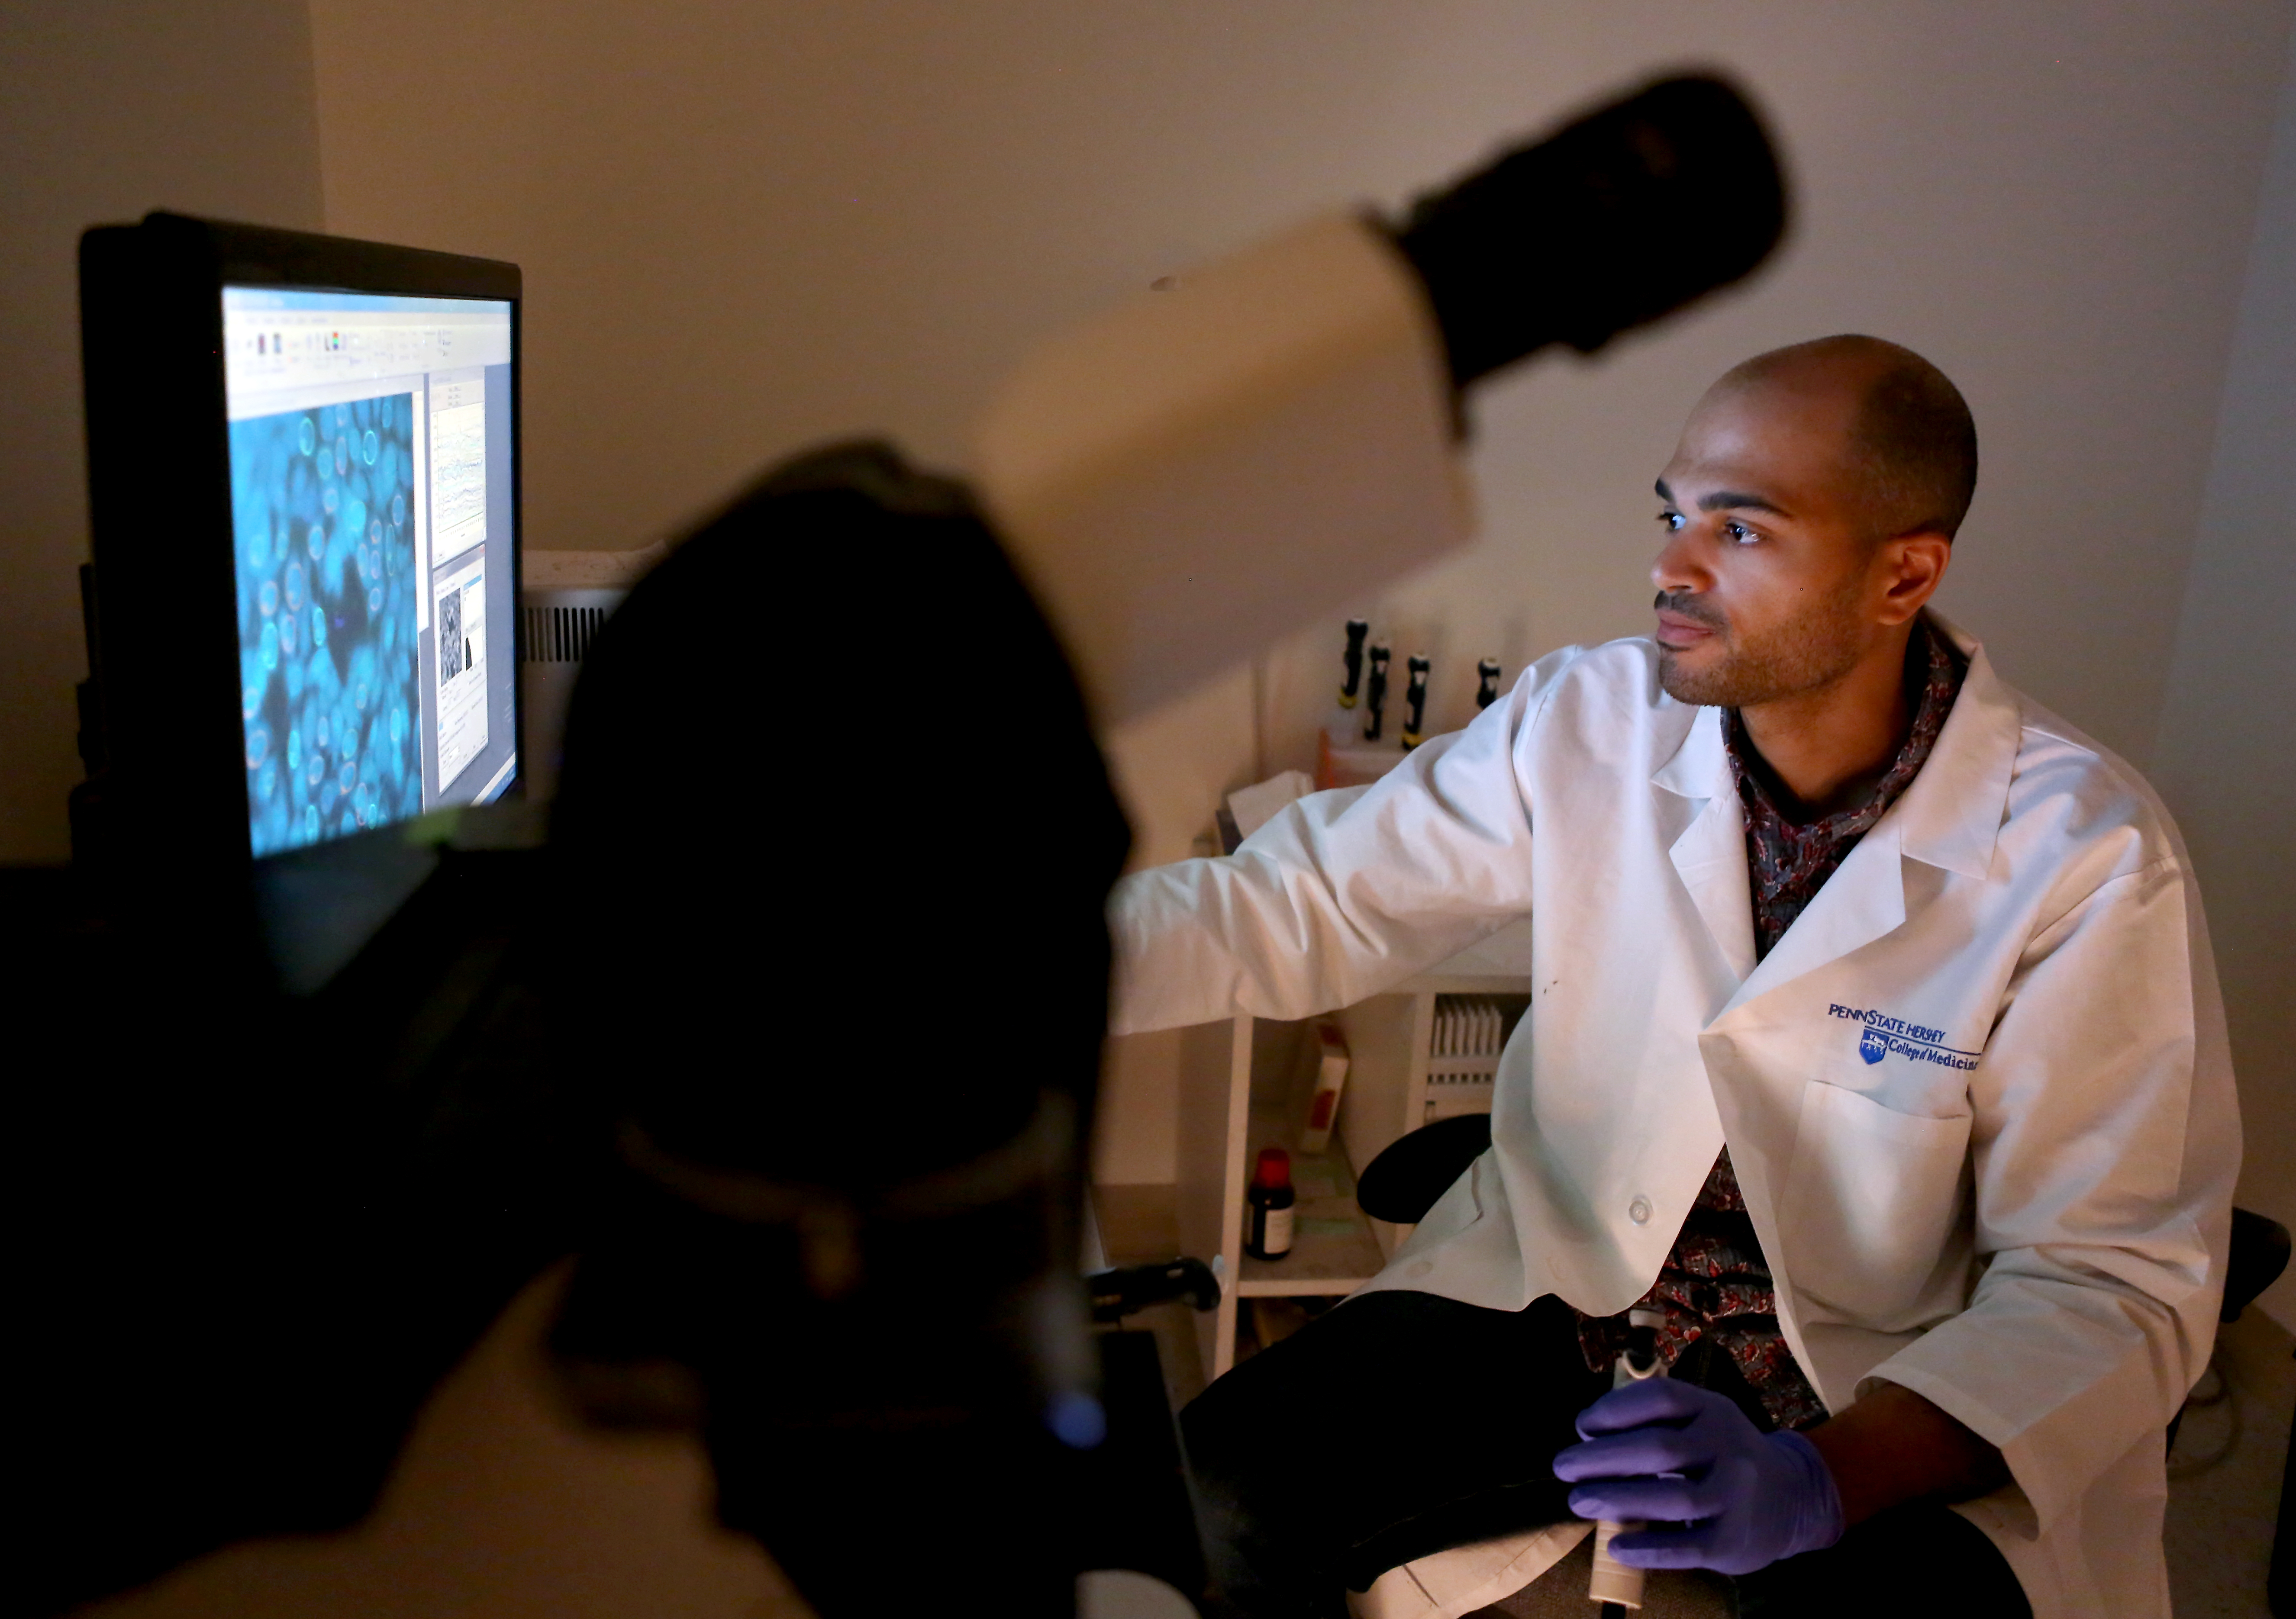 A young man wearing a Penn State College of medicine lab coat and rubber gloves examines cells on a monitor. A microscope is in the foreground. Behind him is a shelf with medical research supplies.